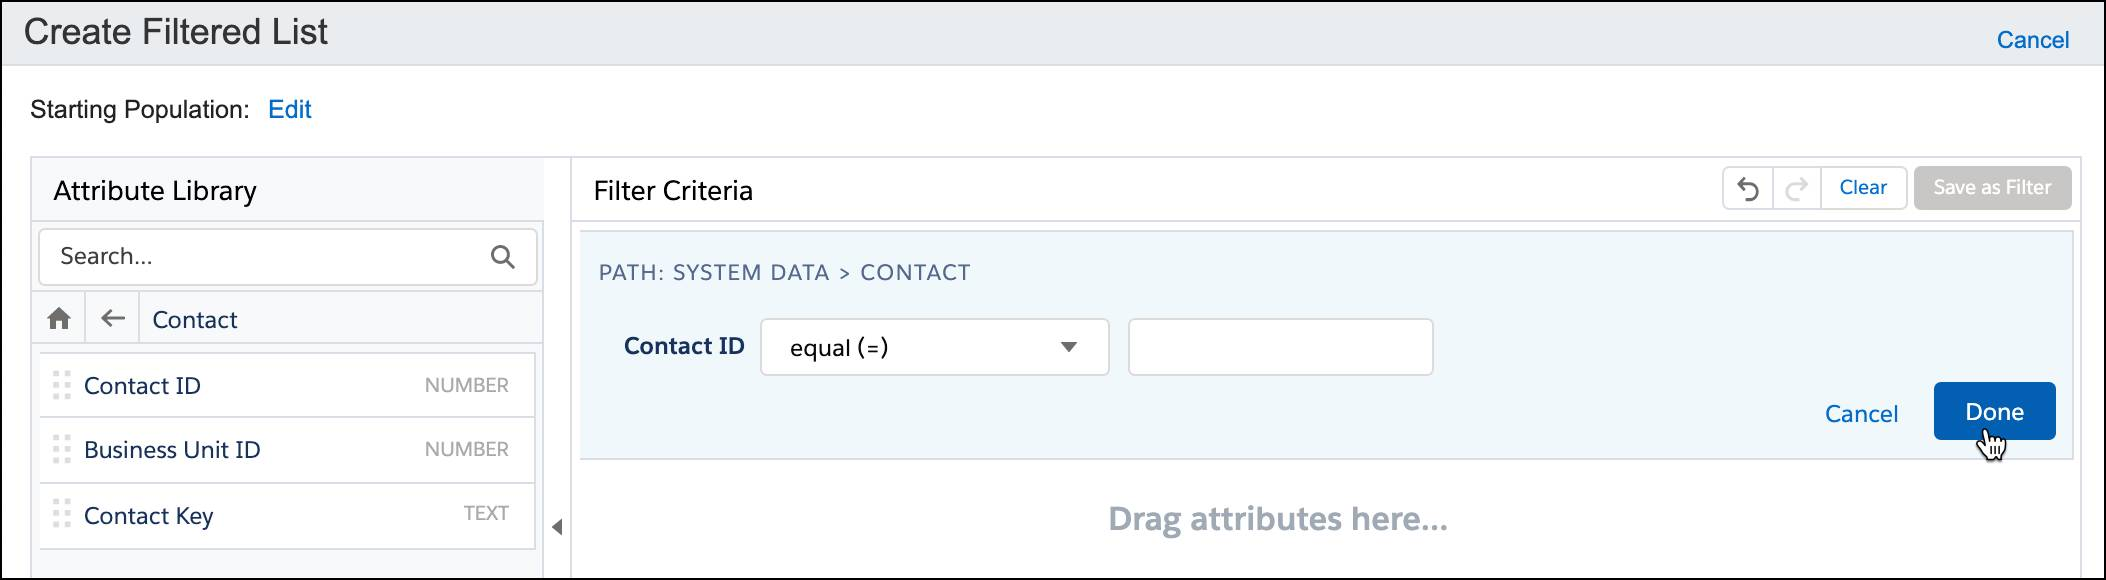 Contact Key selected as filter criteria, and set to equal the field where the key is entered.